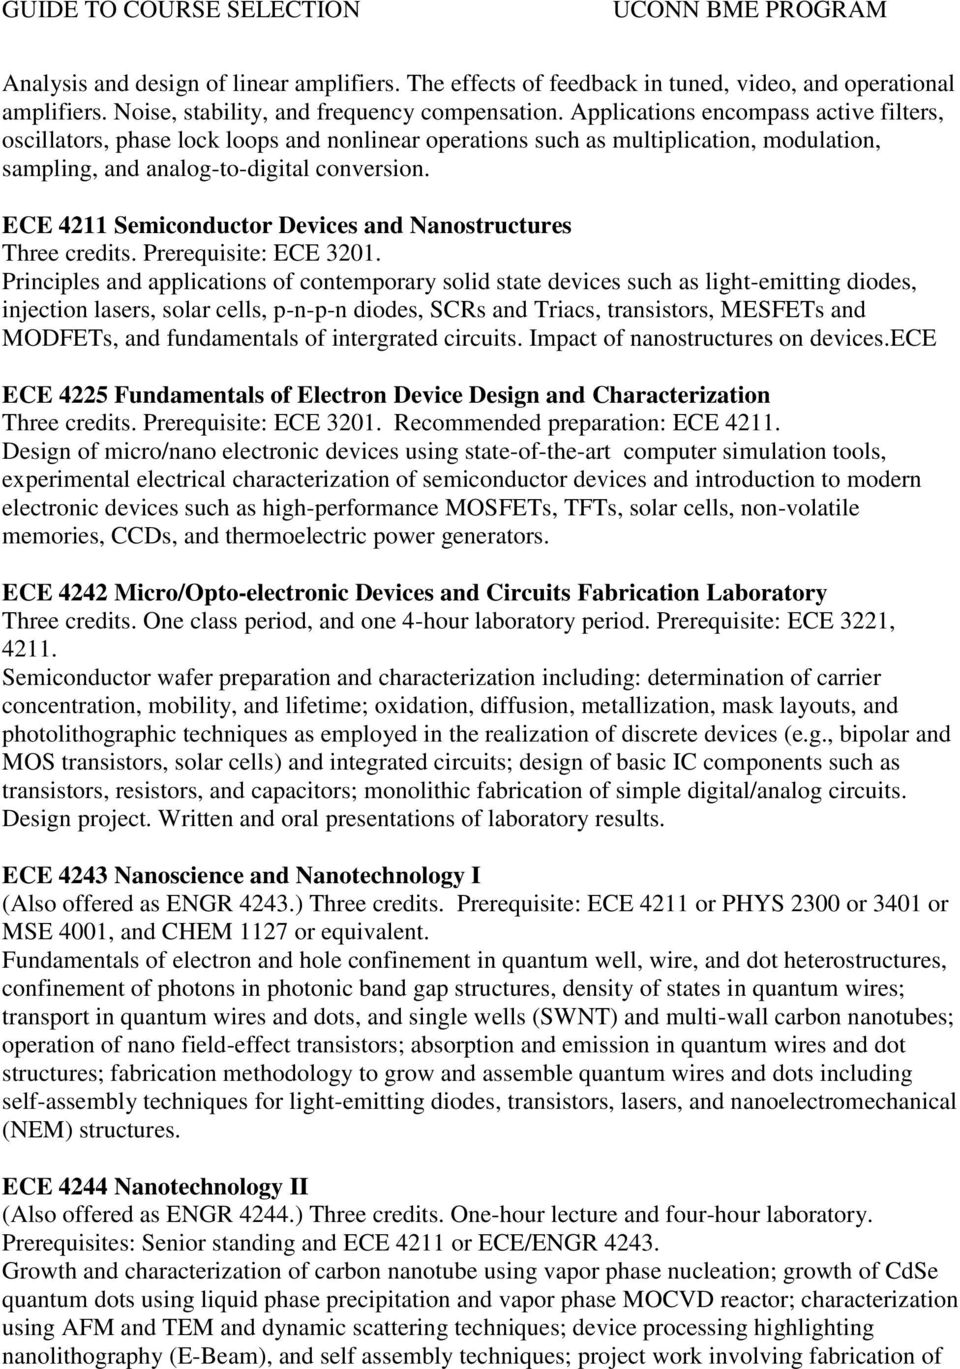 ECE 4211 Semiconductor Devices and Nanostructures Three credits. Prerequisite: ECE 3201.